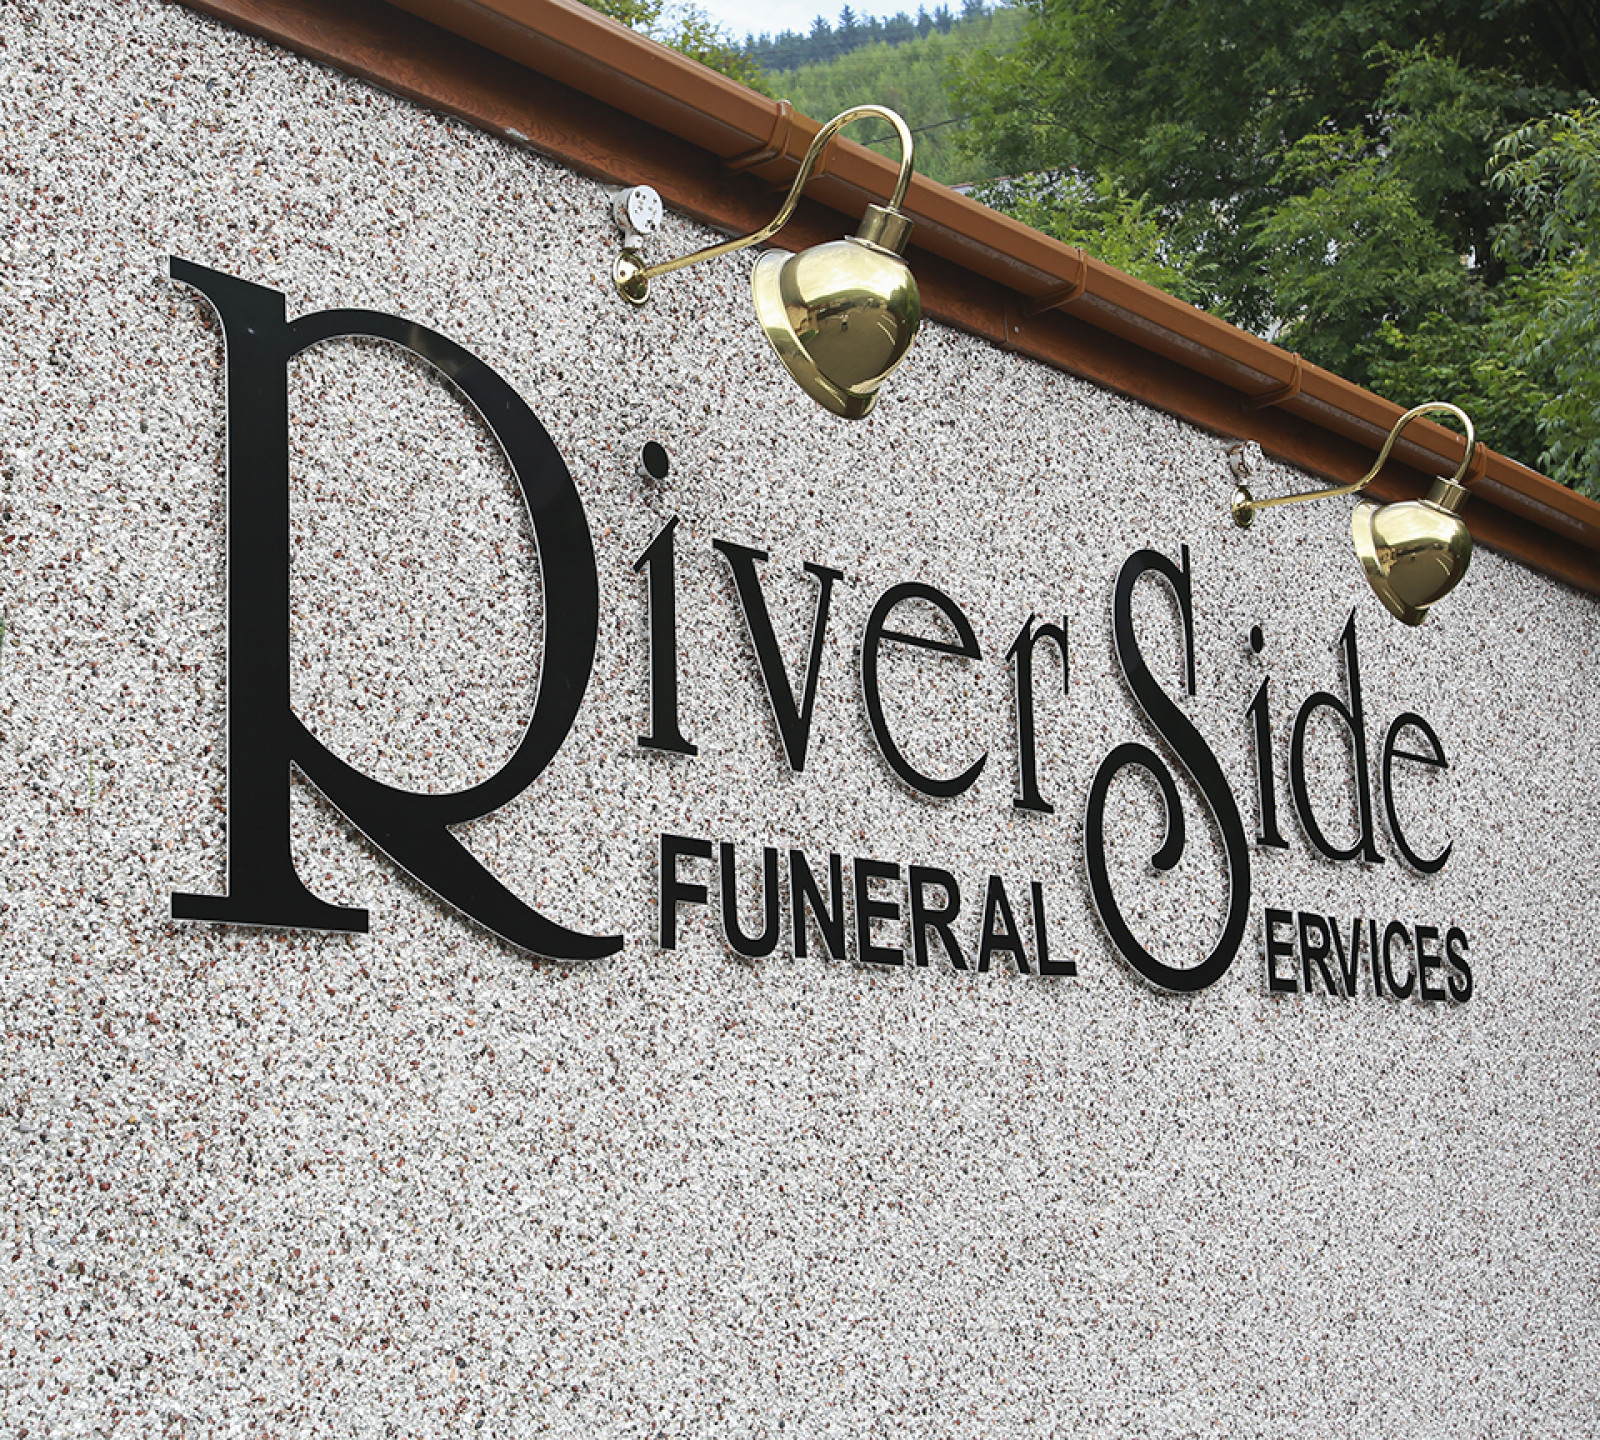 Riverside Funeral Services